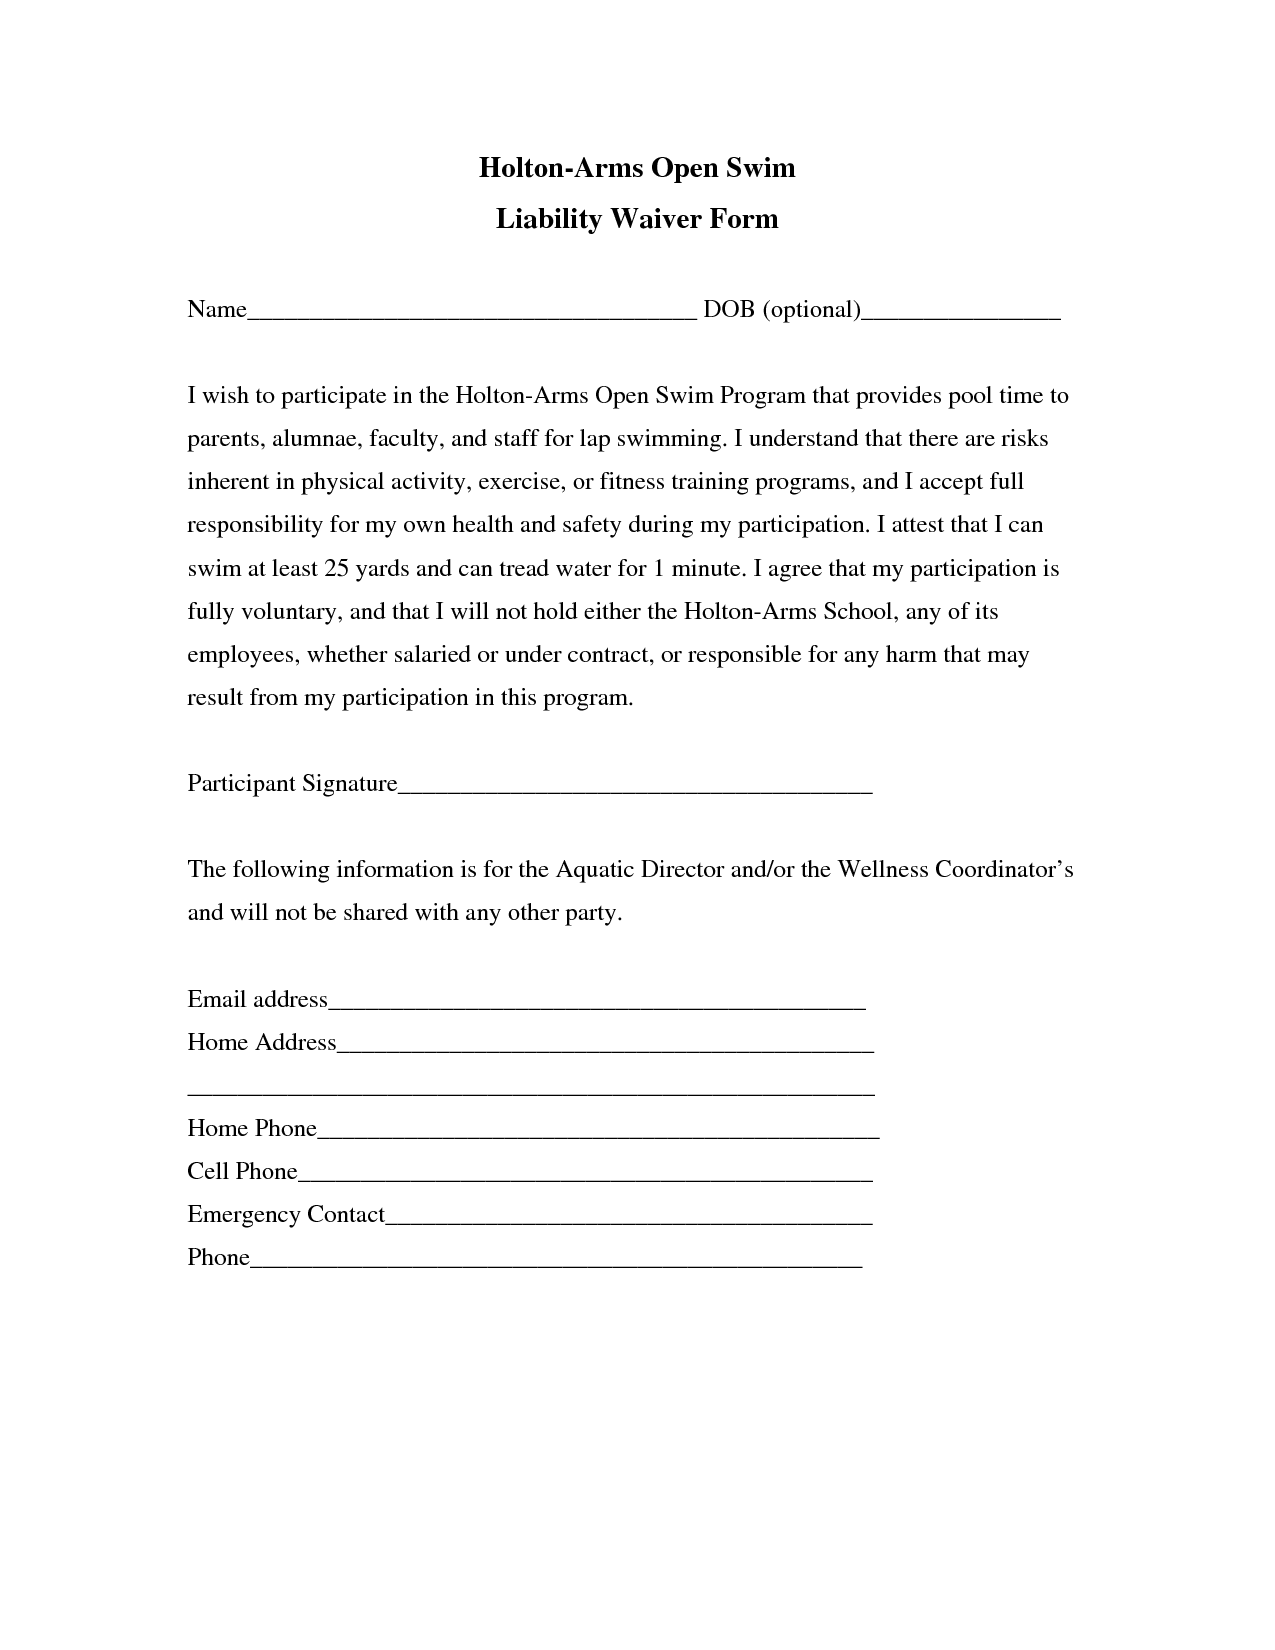 Liability Release Form Templates  Generic Release Of Liability Form